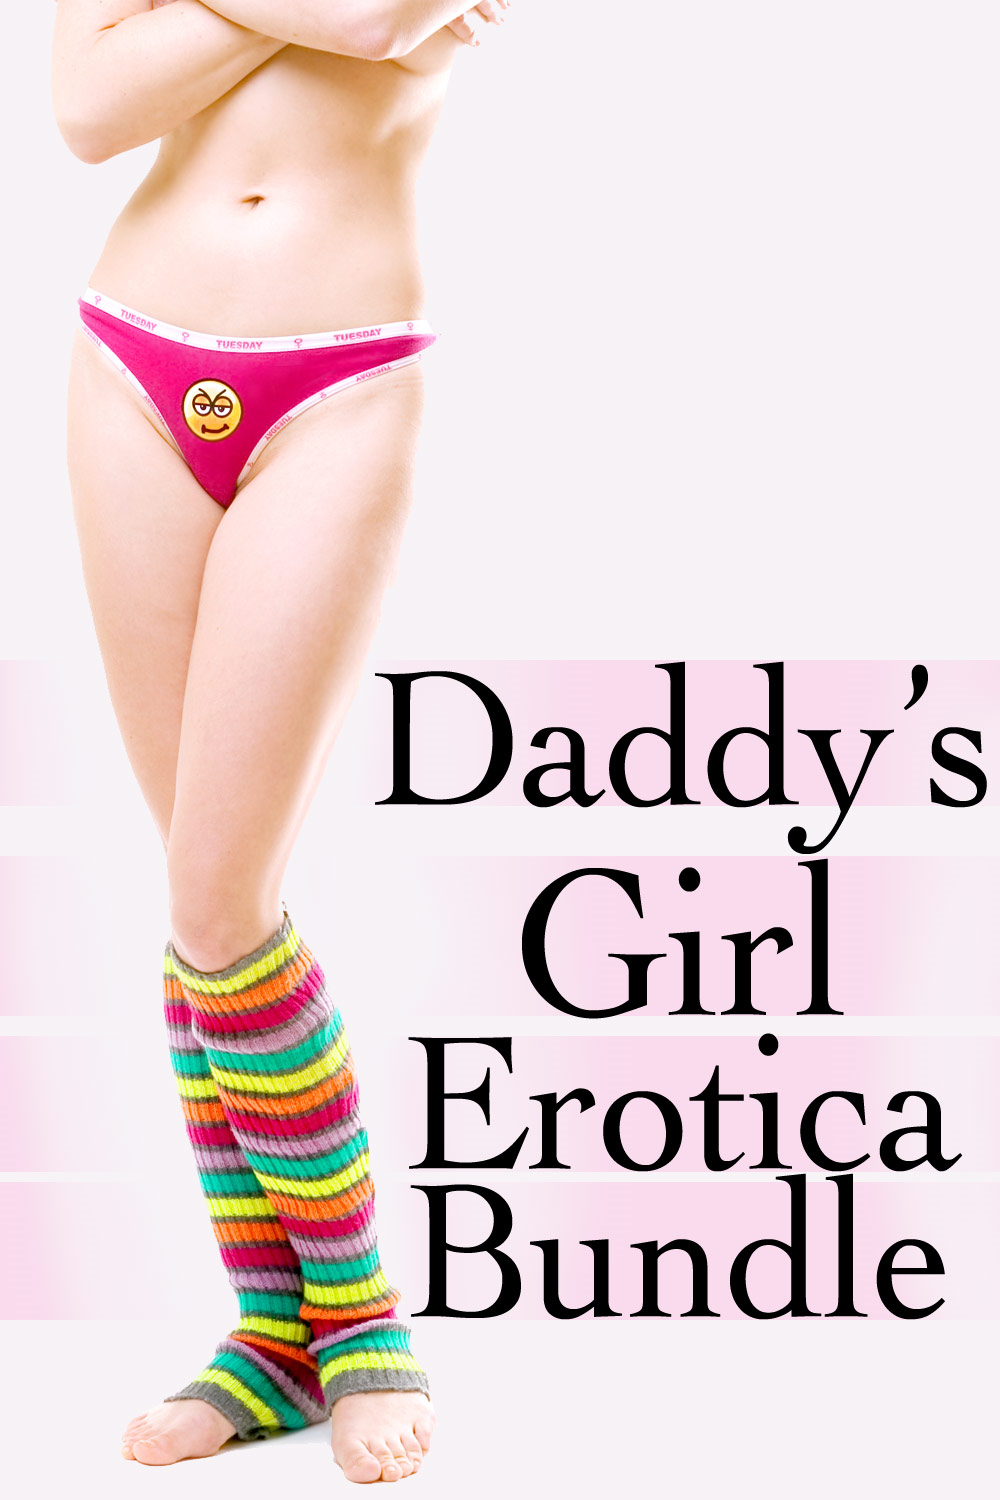 Daddy's Girl Erotica Bundle (Pseudo Incest Erotica)